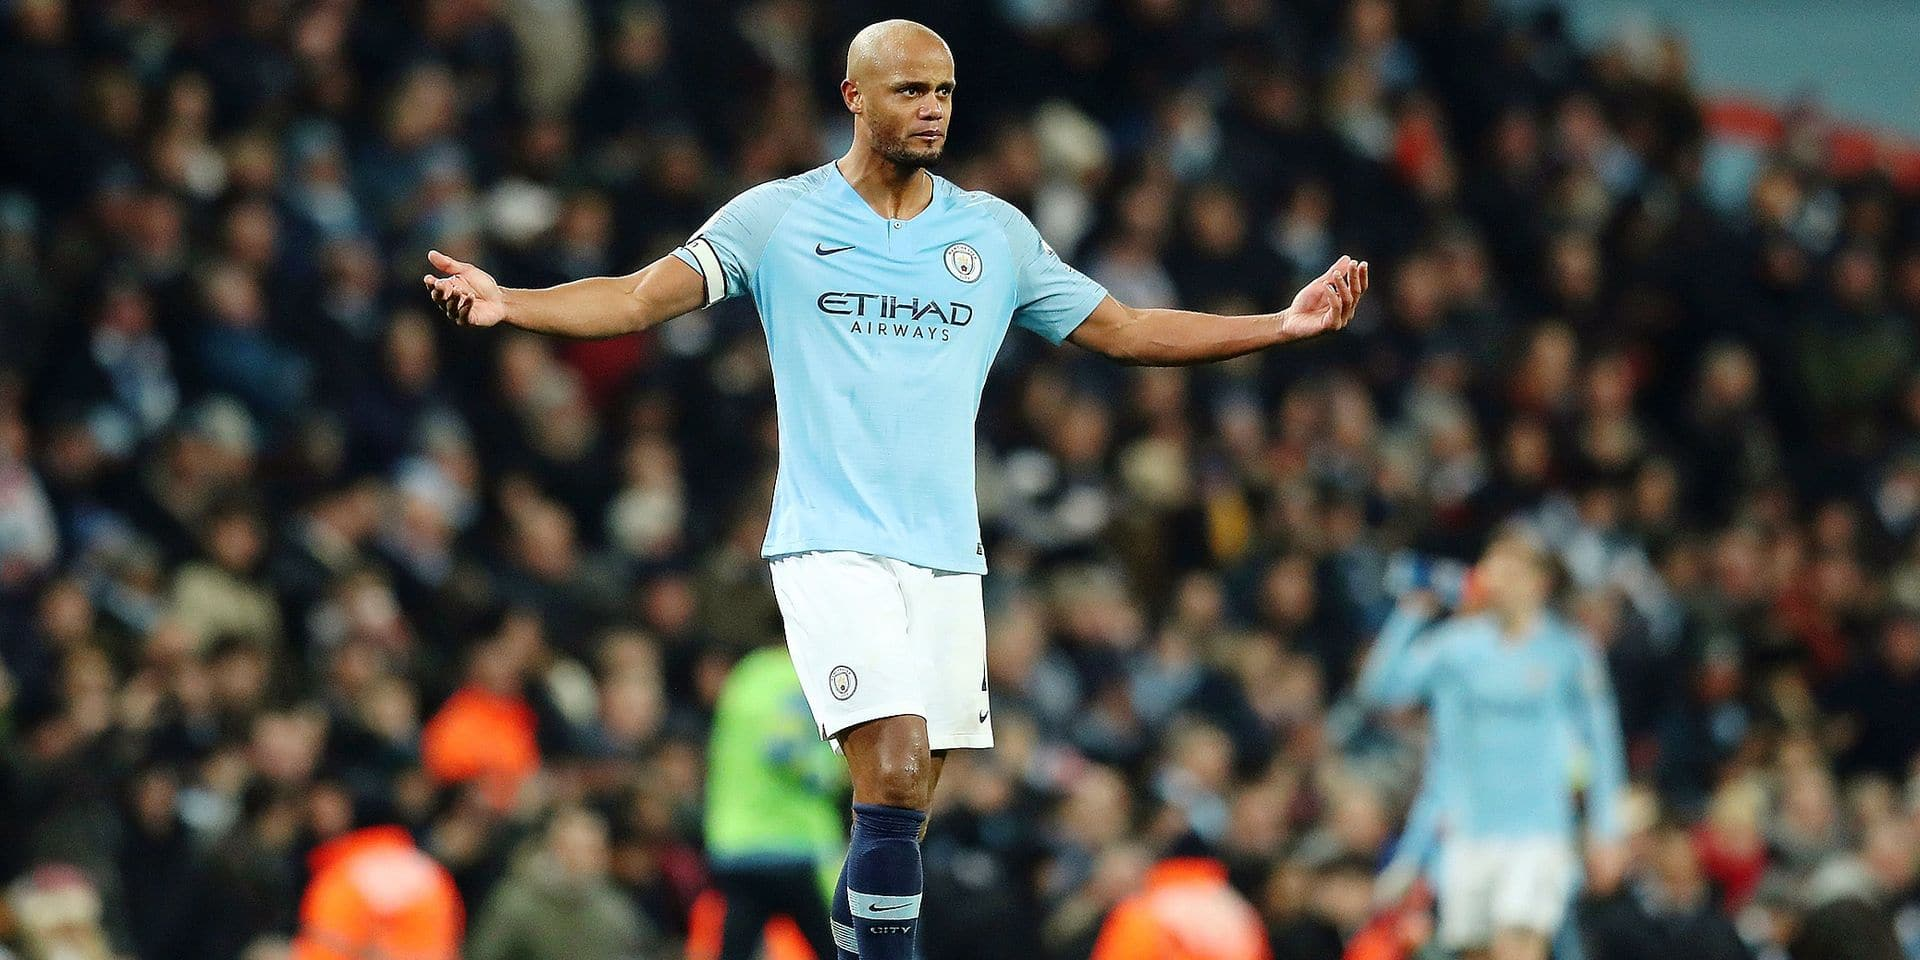 Manchester City's Vincent Kompany gestures to his teammates during their English Premier League soccer match between Manchester City and Liverpool at the Ethiad stadium, Manchester England, Thursday, Jan. 3, 2019. (AP Photo/Jon Super)